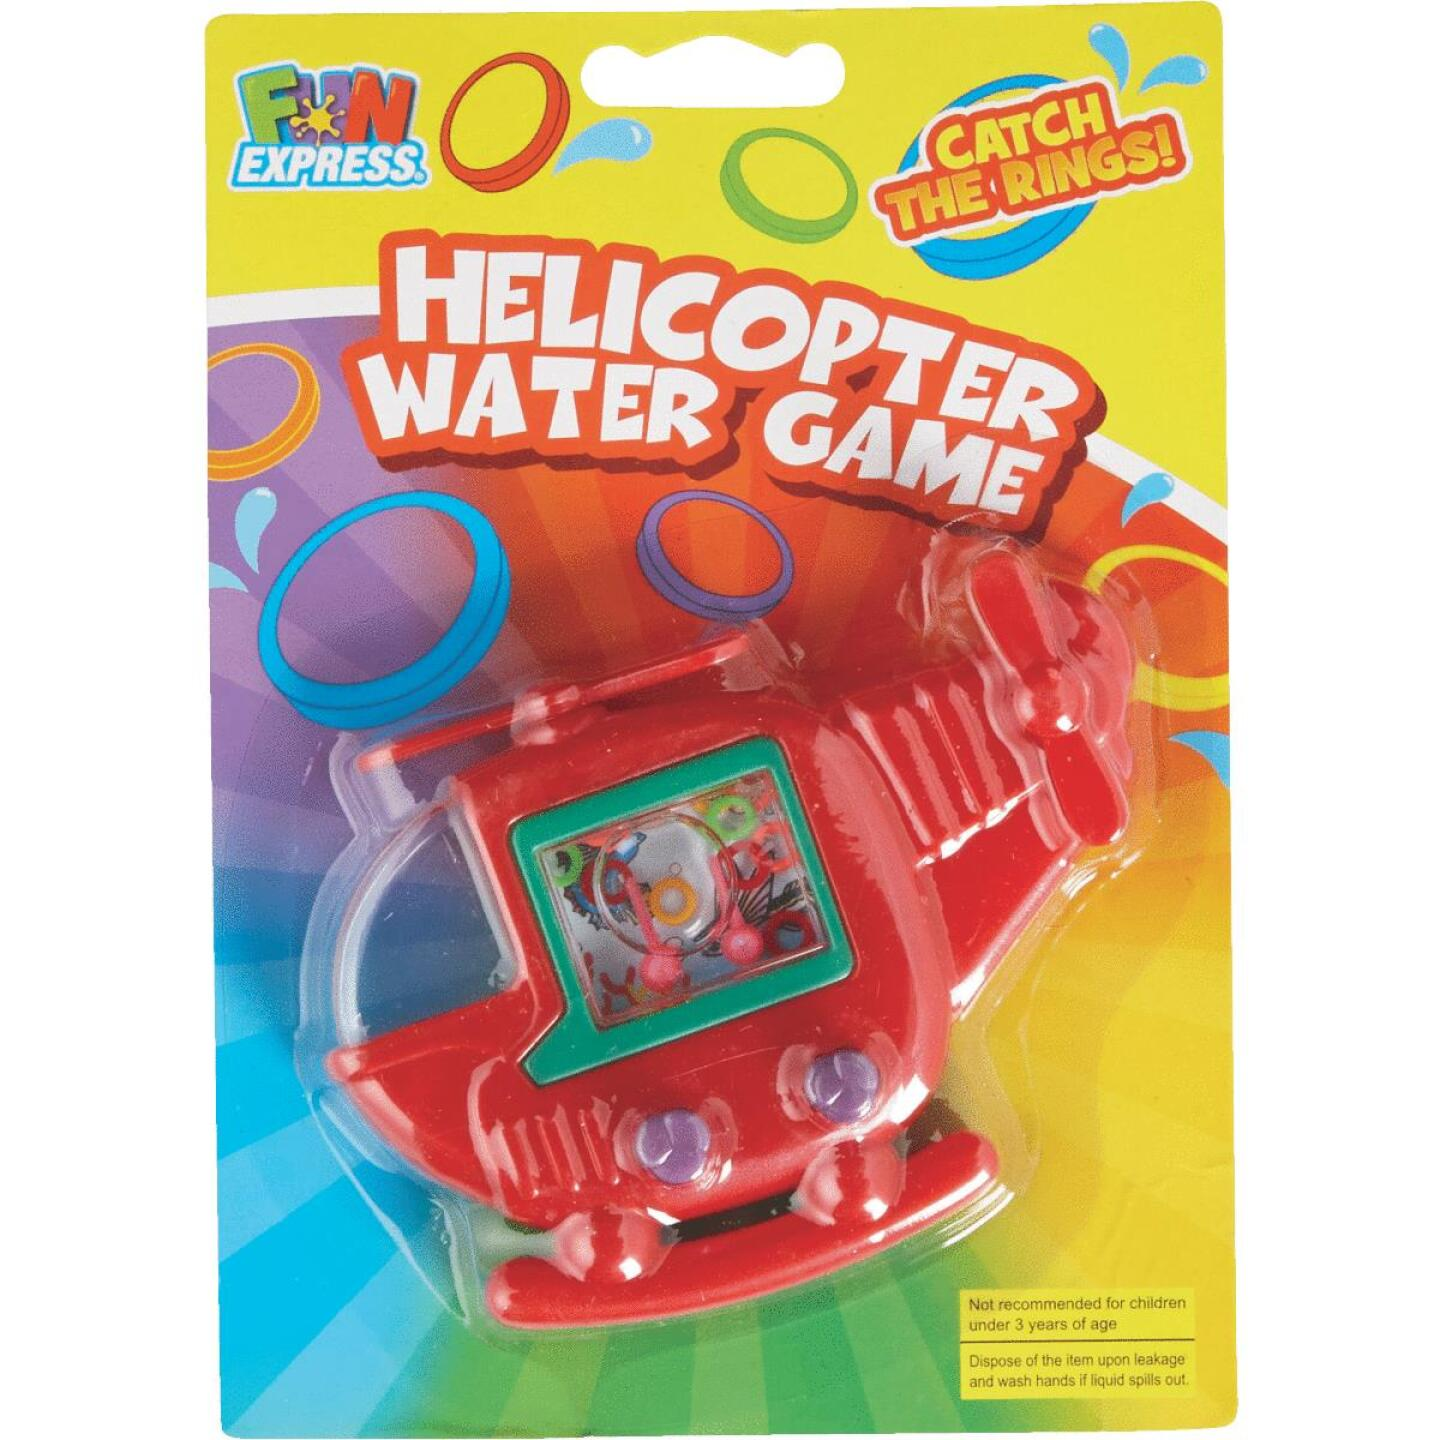 Fun Express Helicopter Water Game Image 2